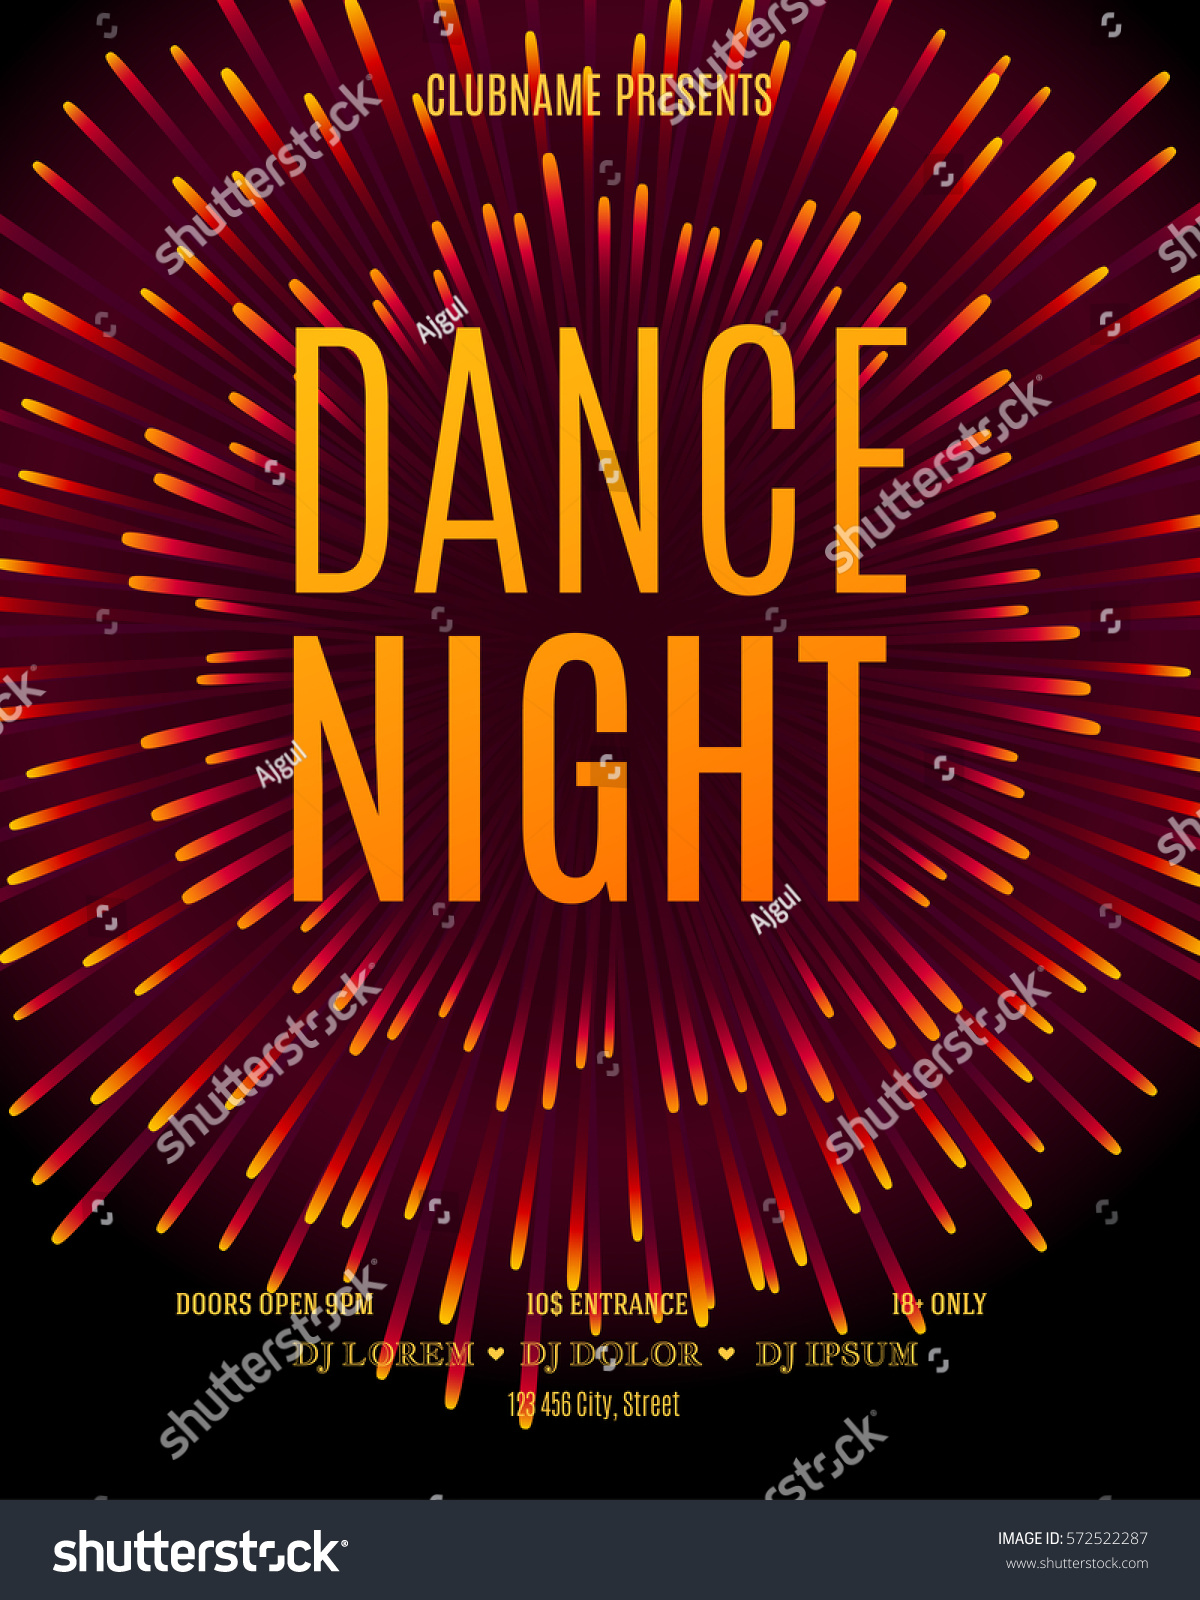 royalty free dance night poster template modern 572522287 stock